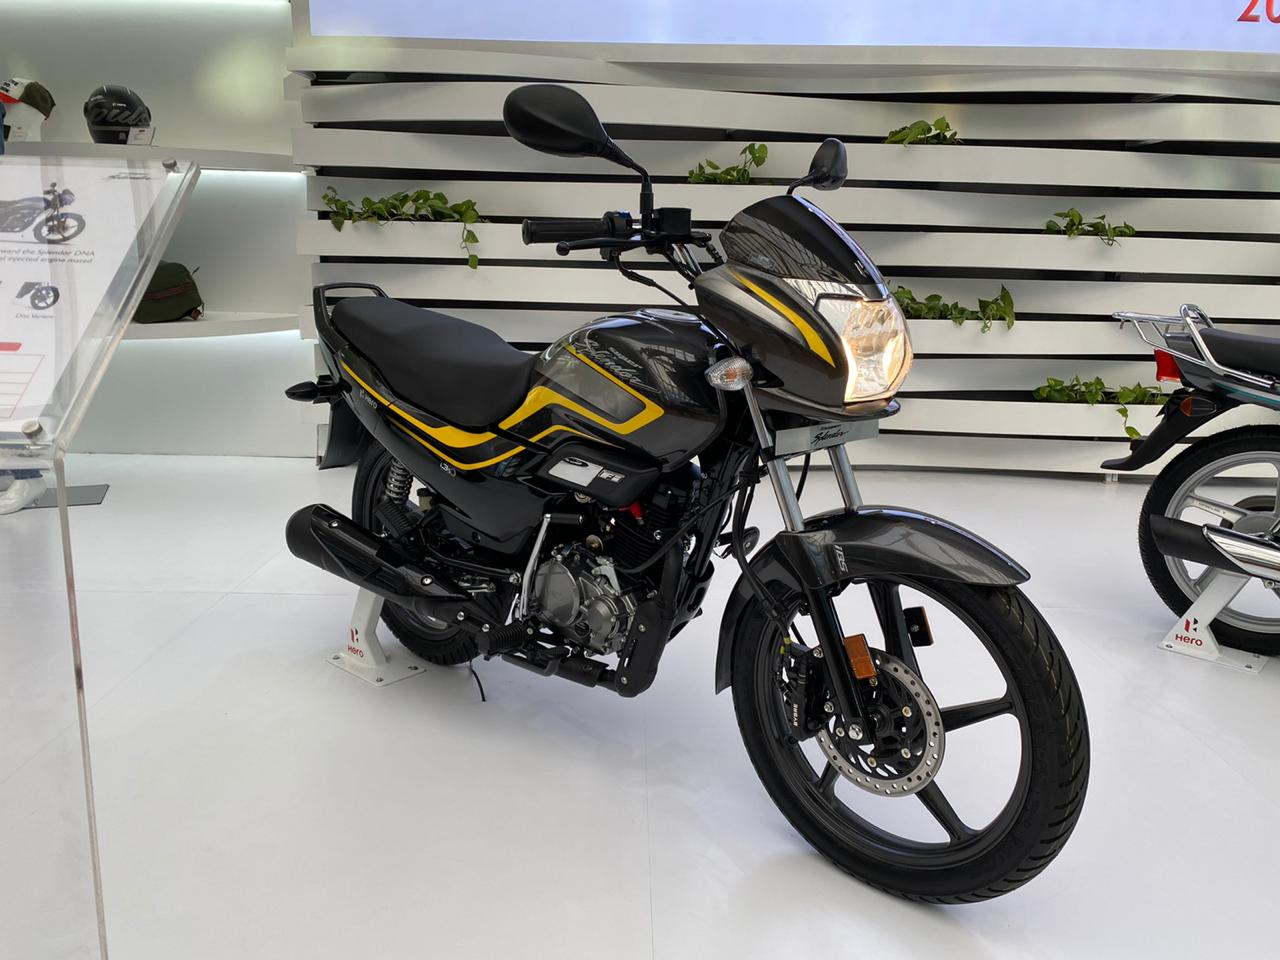 Hero Super Splendor BS6 Launched In India